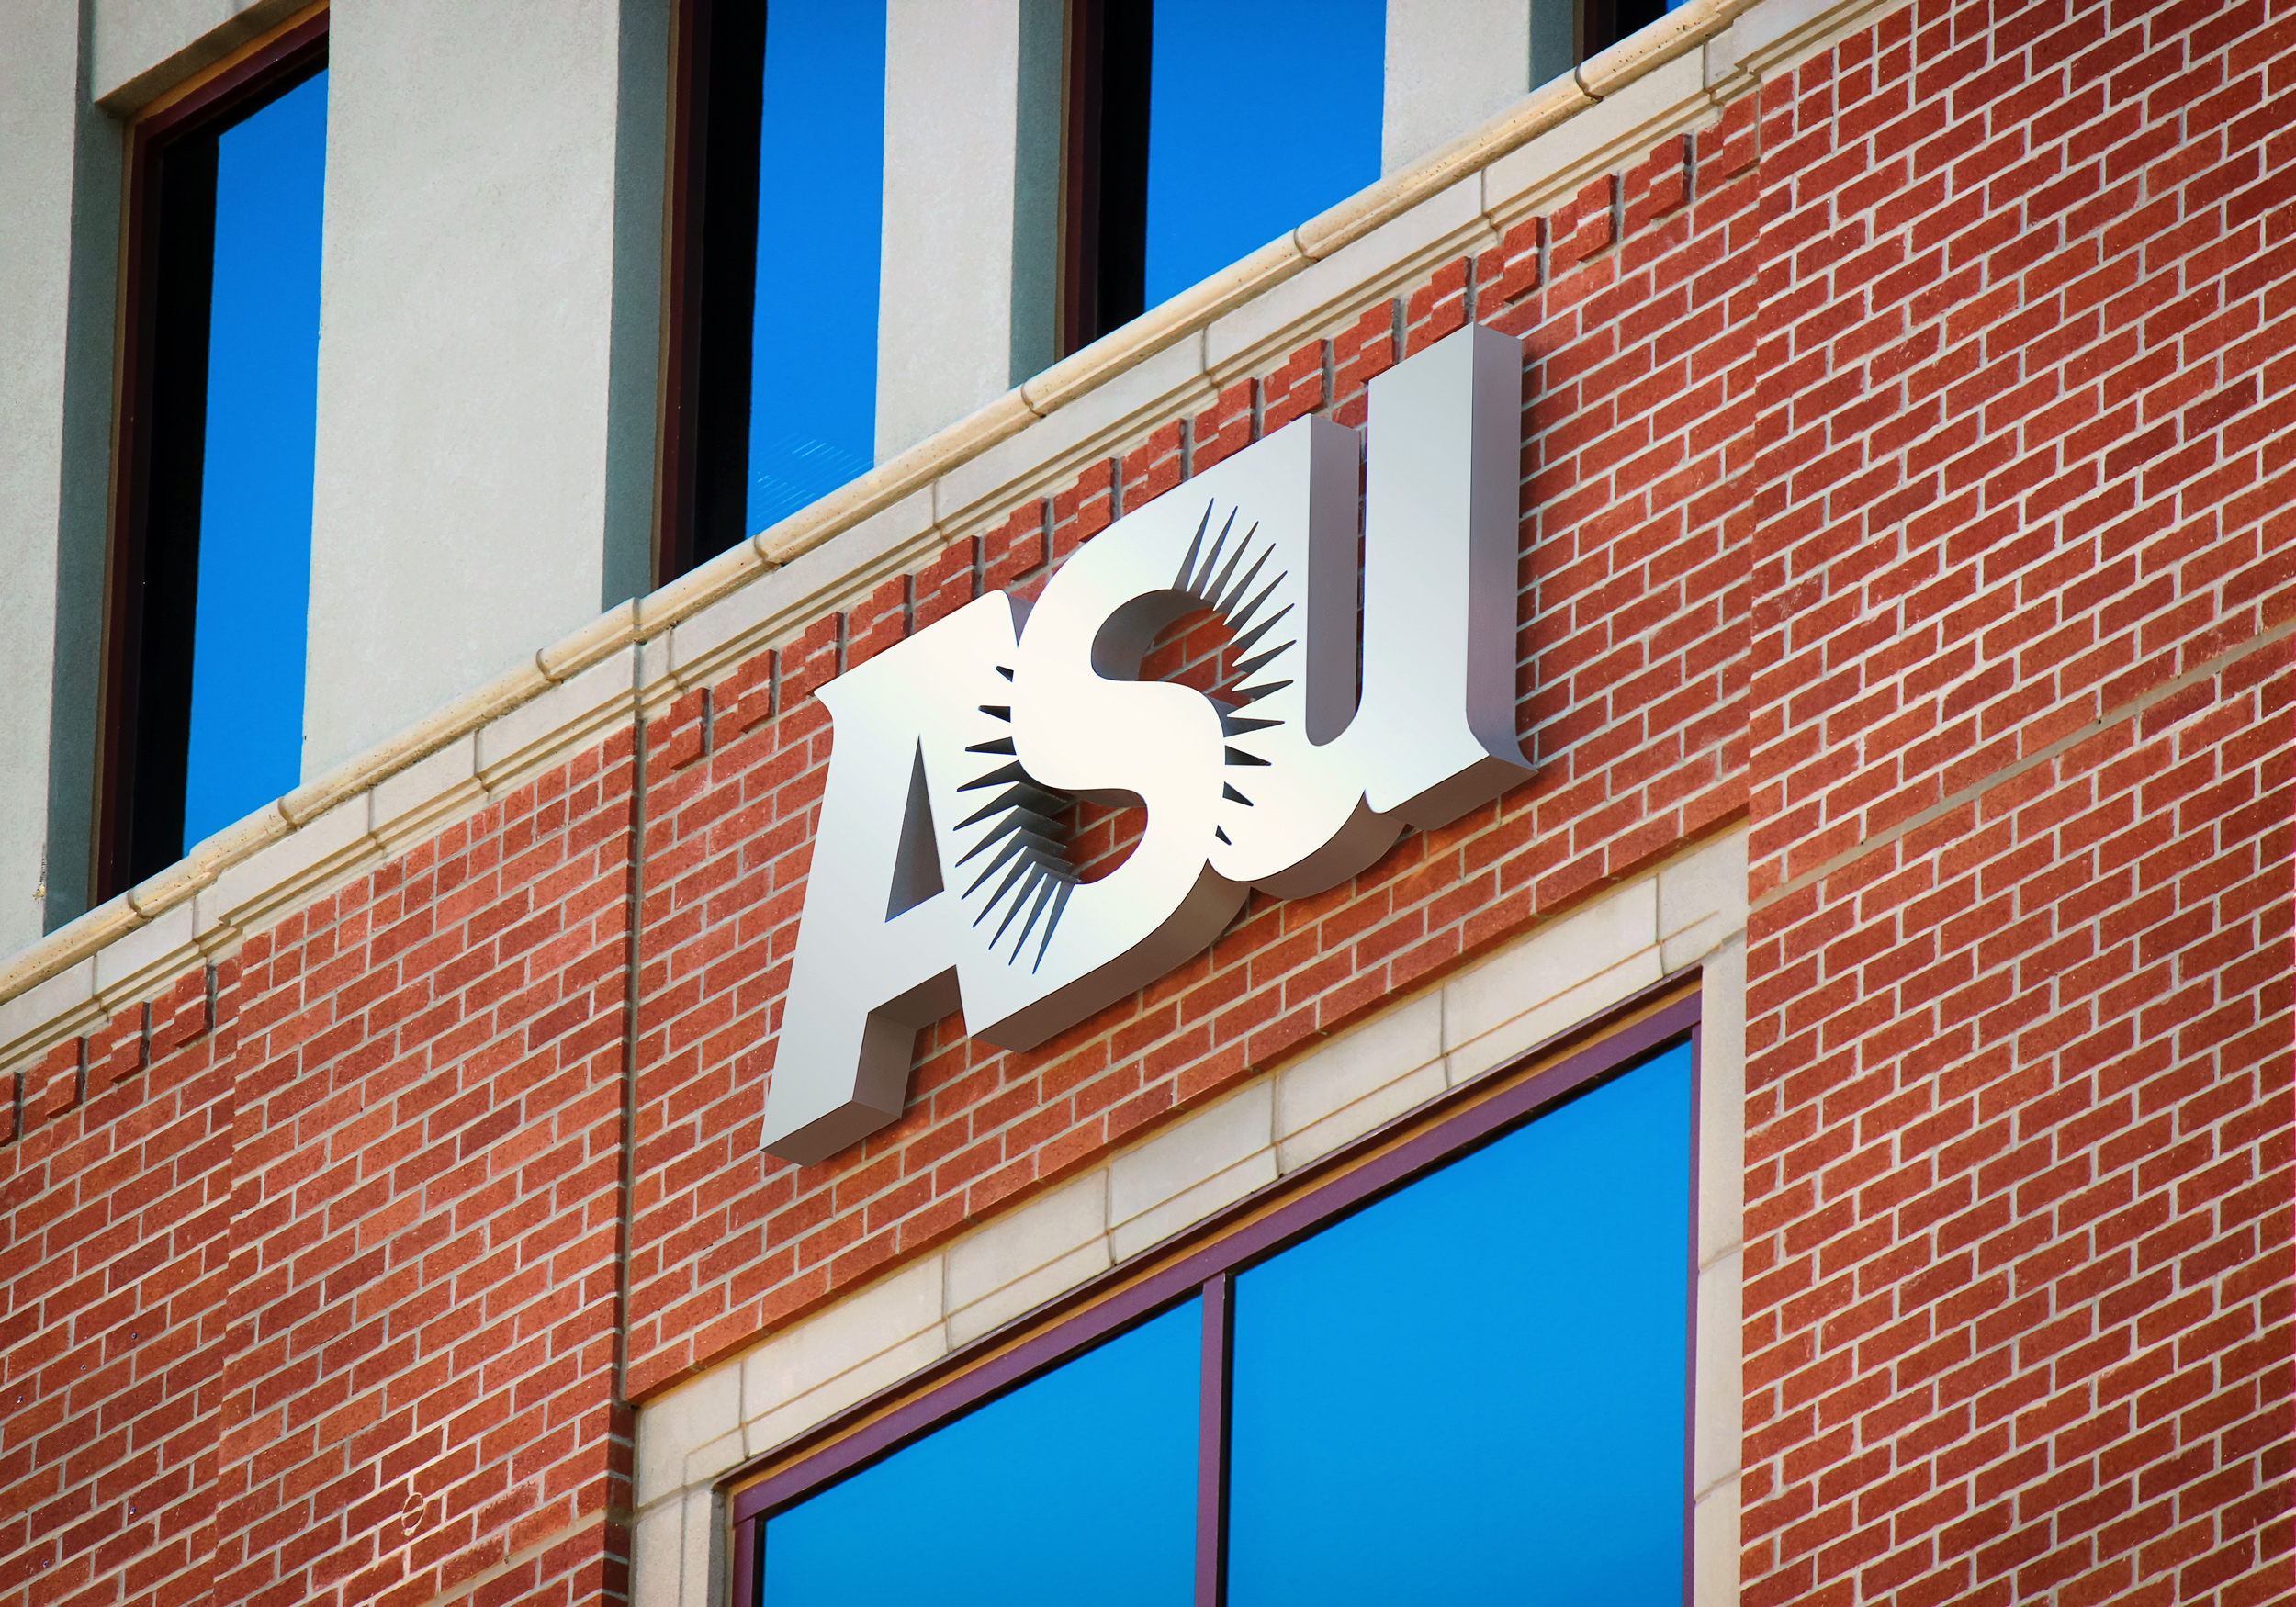 This closeup photo shows the perforated return detail as well as the intricate ASU sunburst.